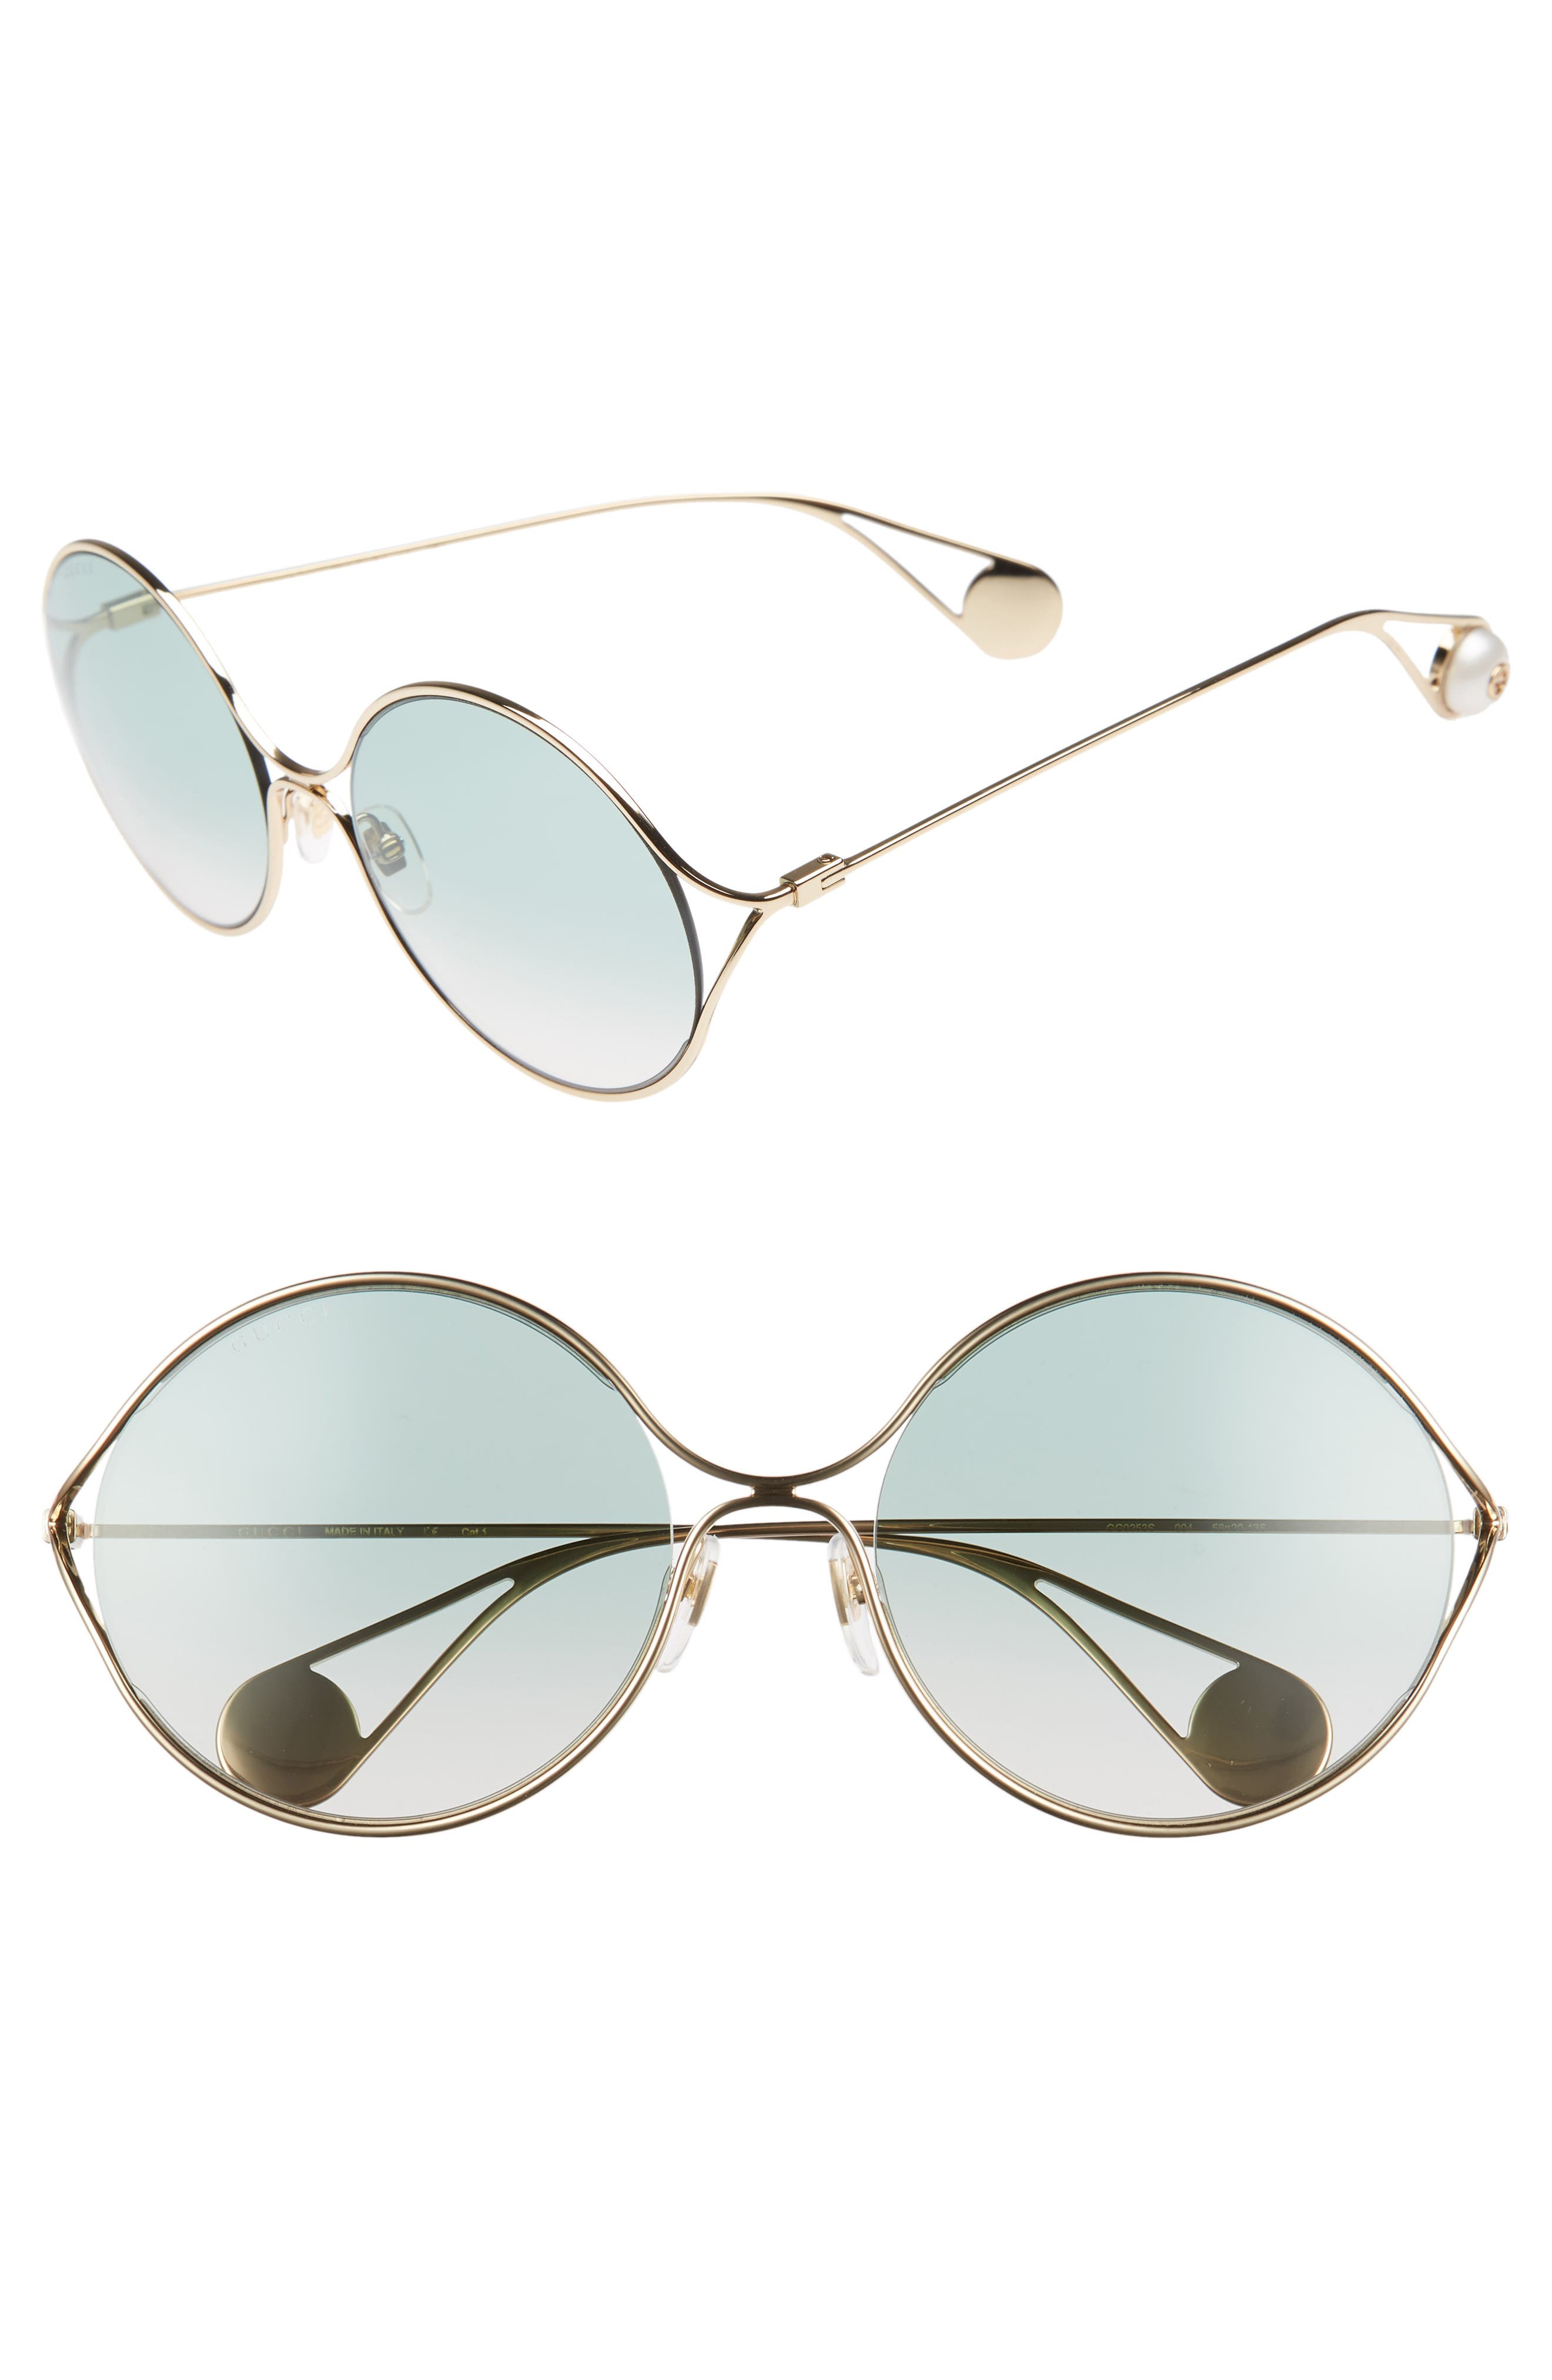 Main Image - Gucci 58mm Gradient Lens Round Sunglasses